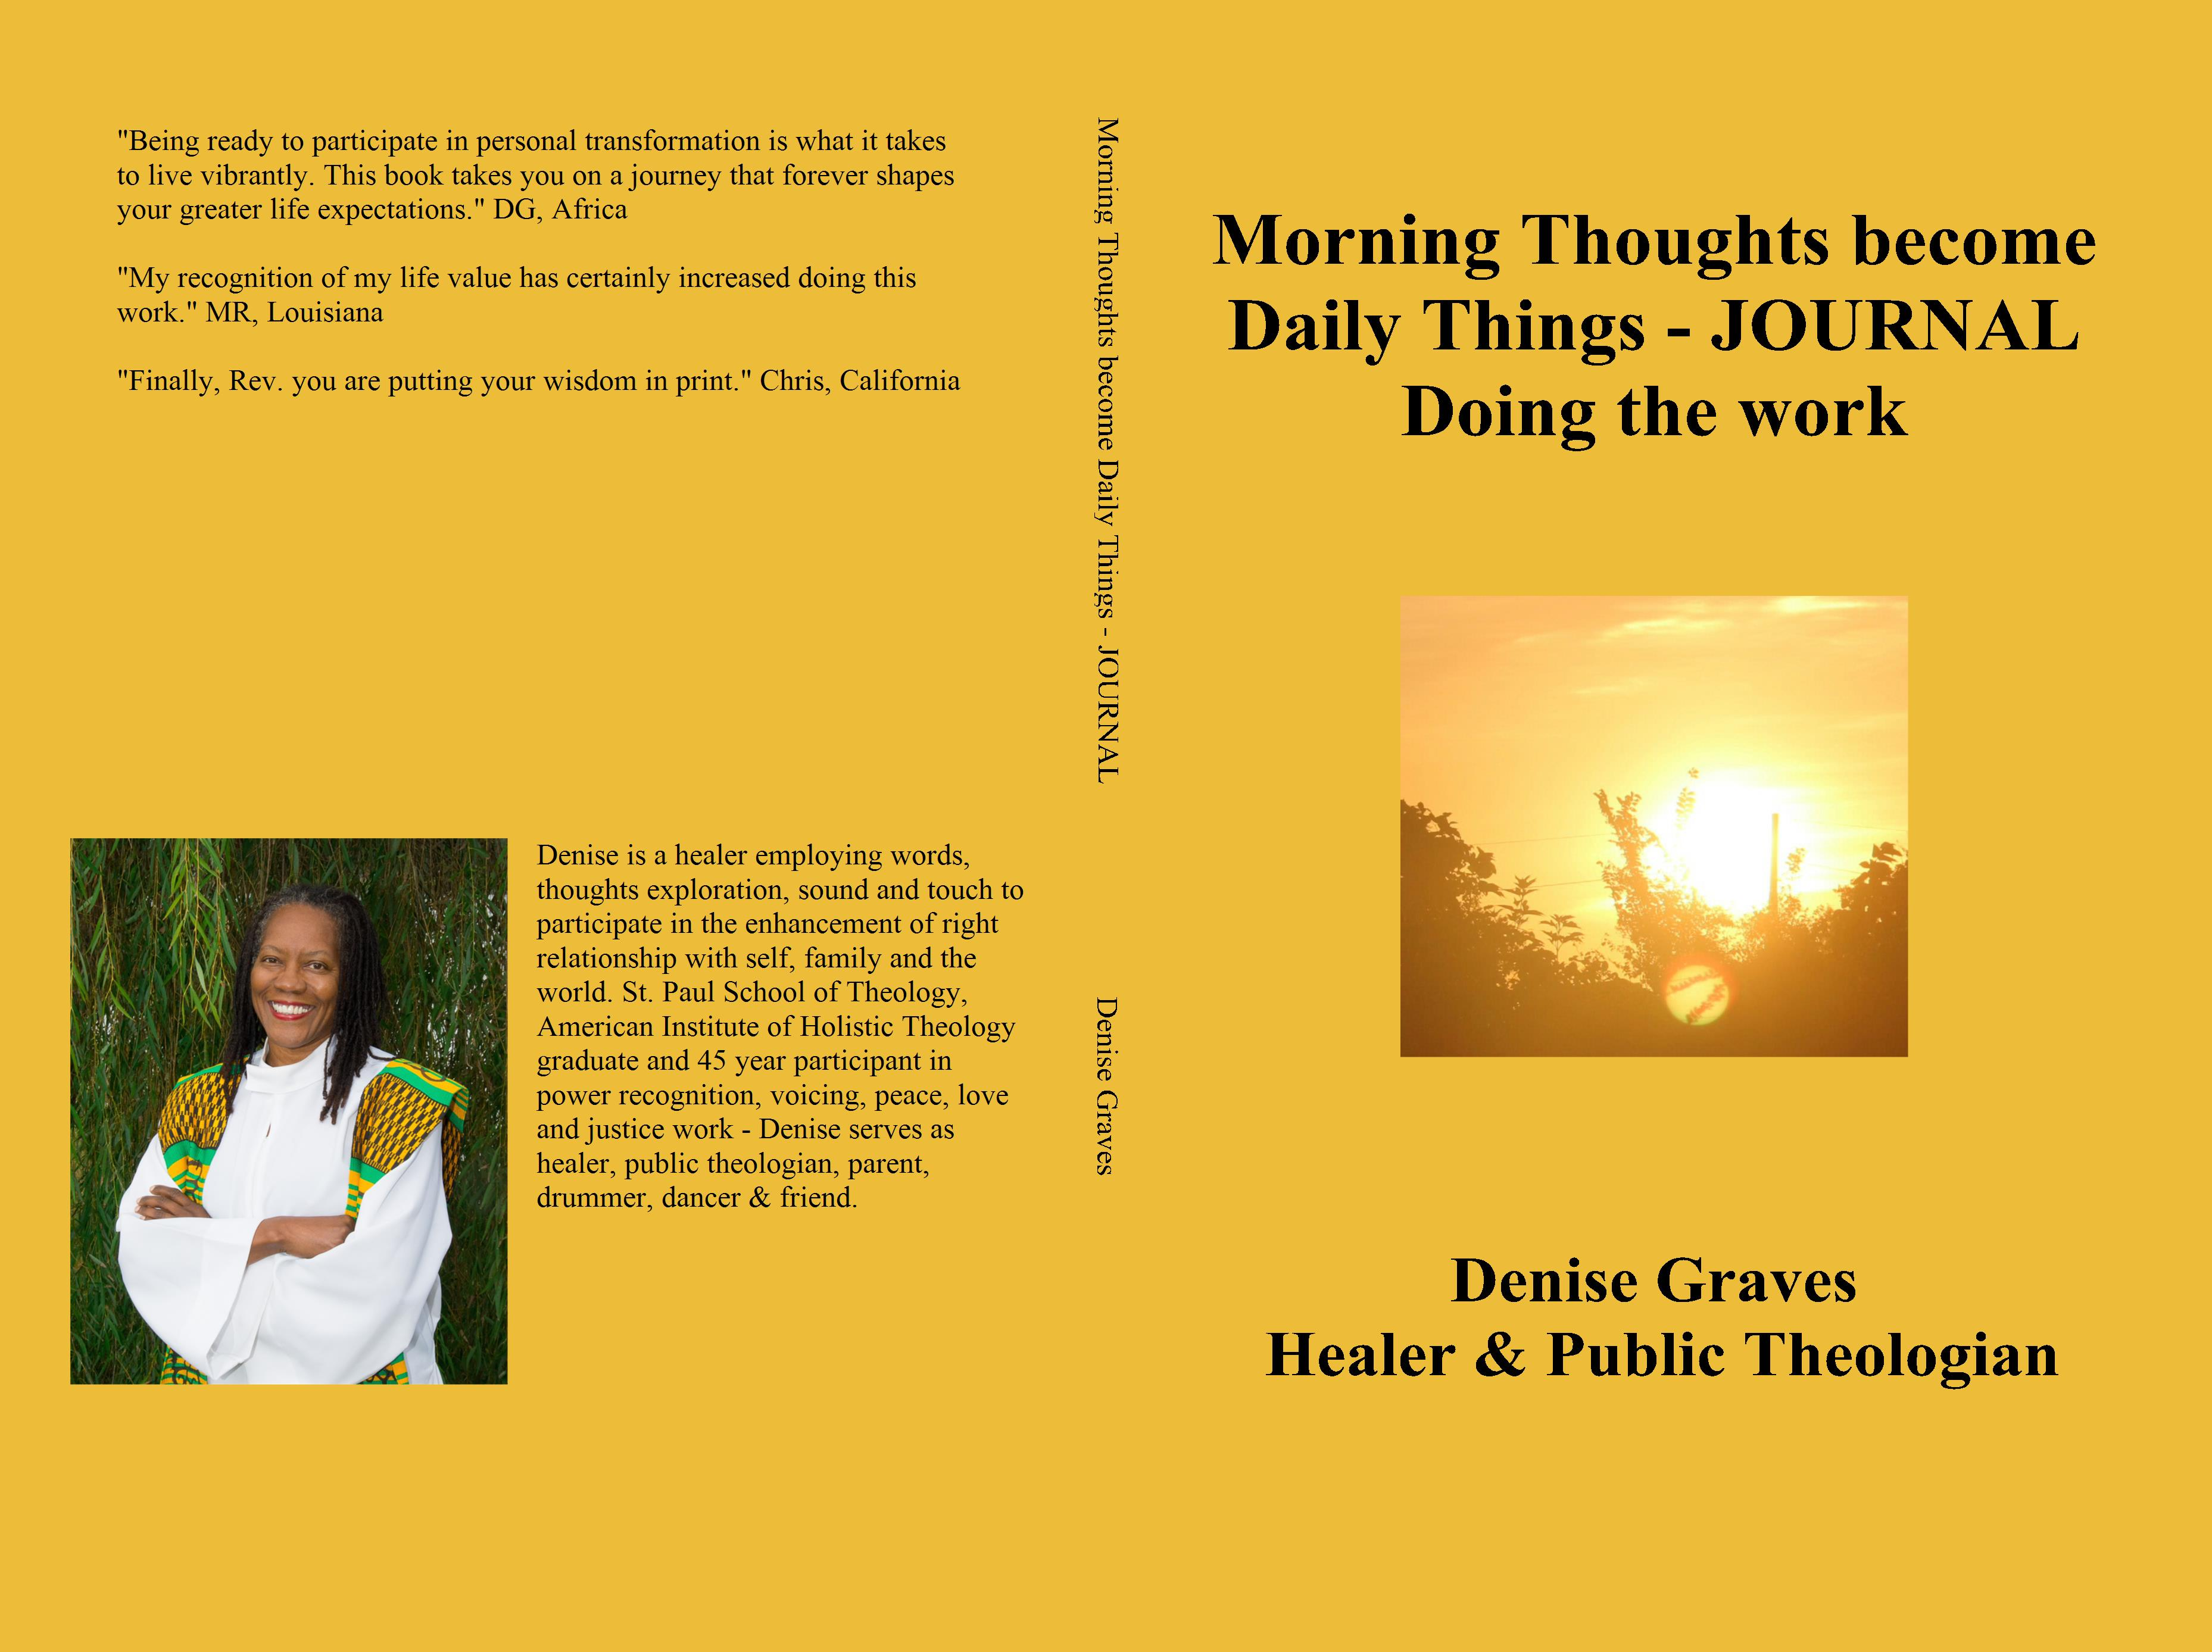 Morning Thoughts Become Daily Things Journal Doing The Work Cover Image